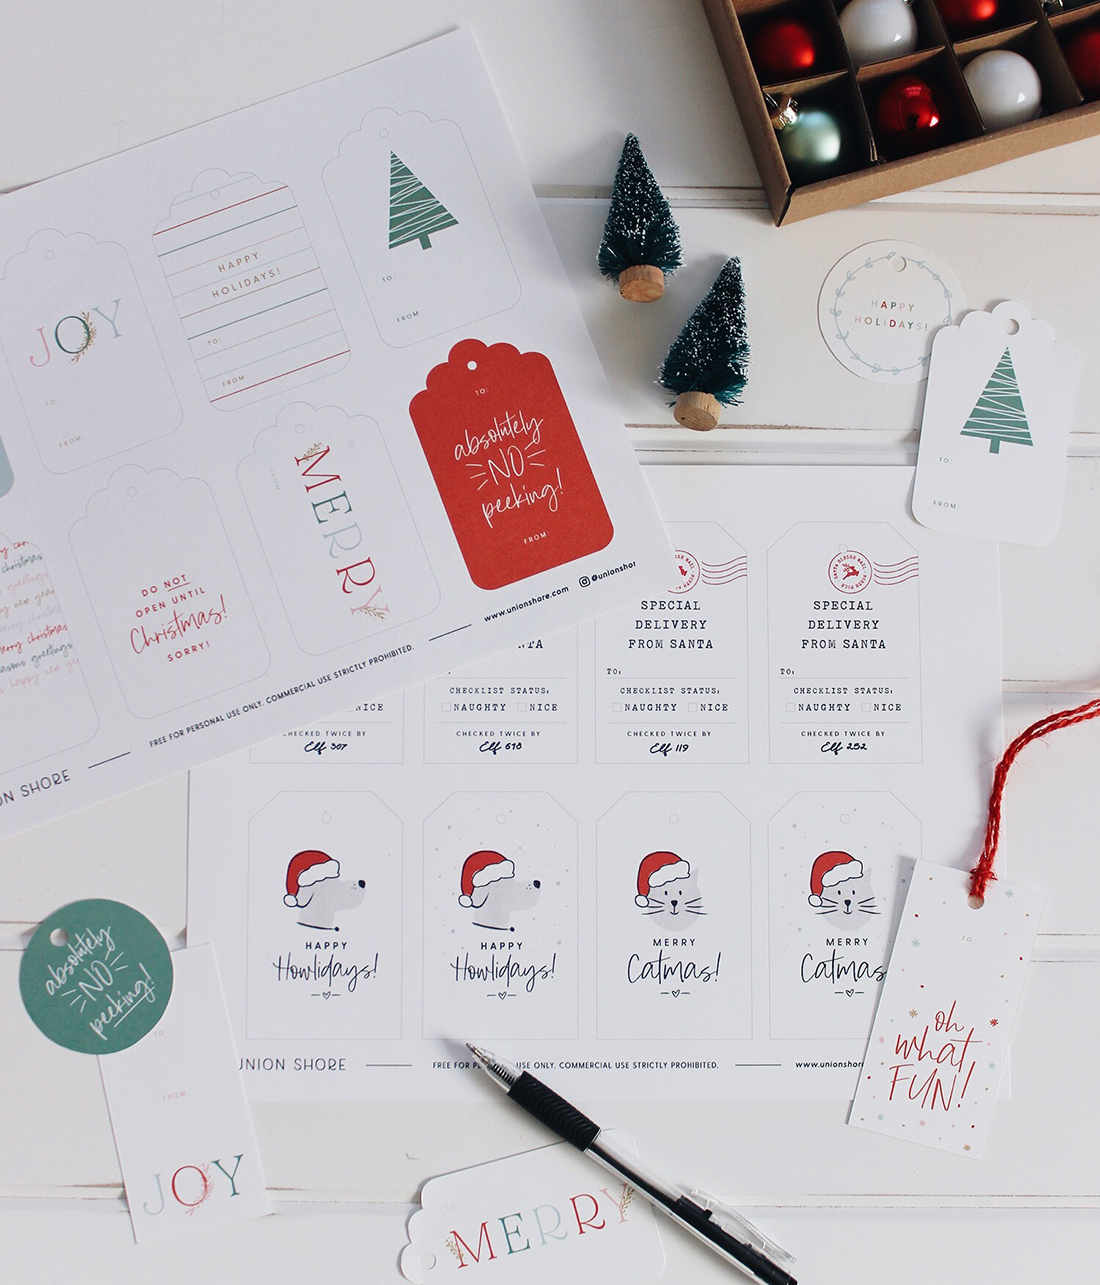 Free Printable Holiday Gift Tags | Union Shore Blog